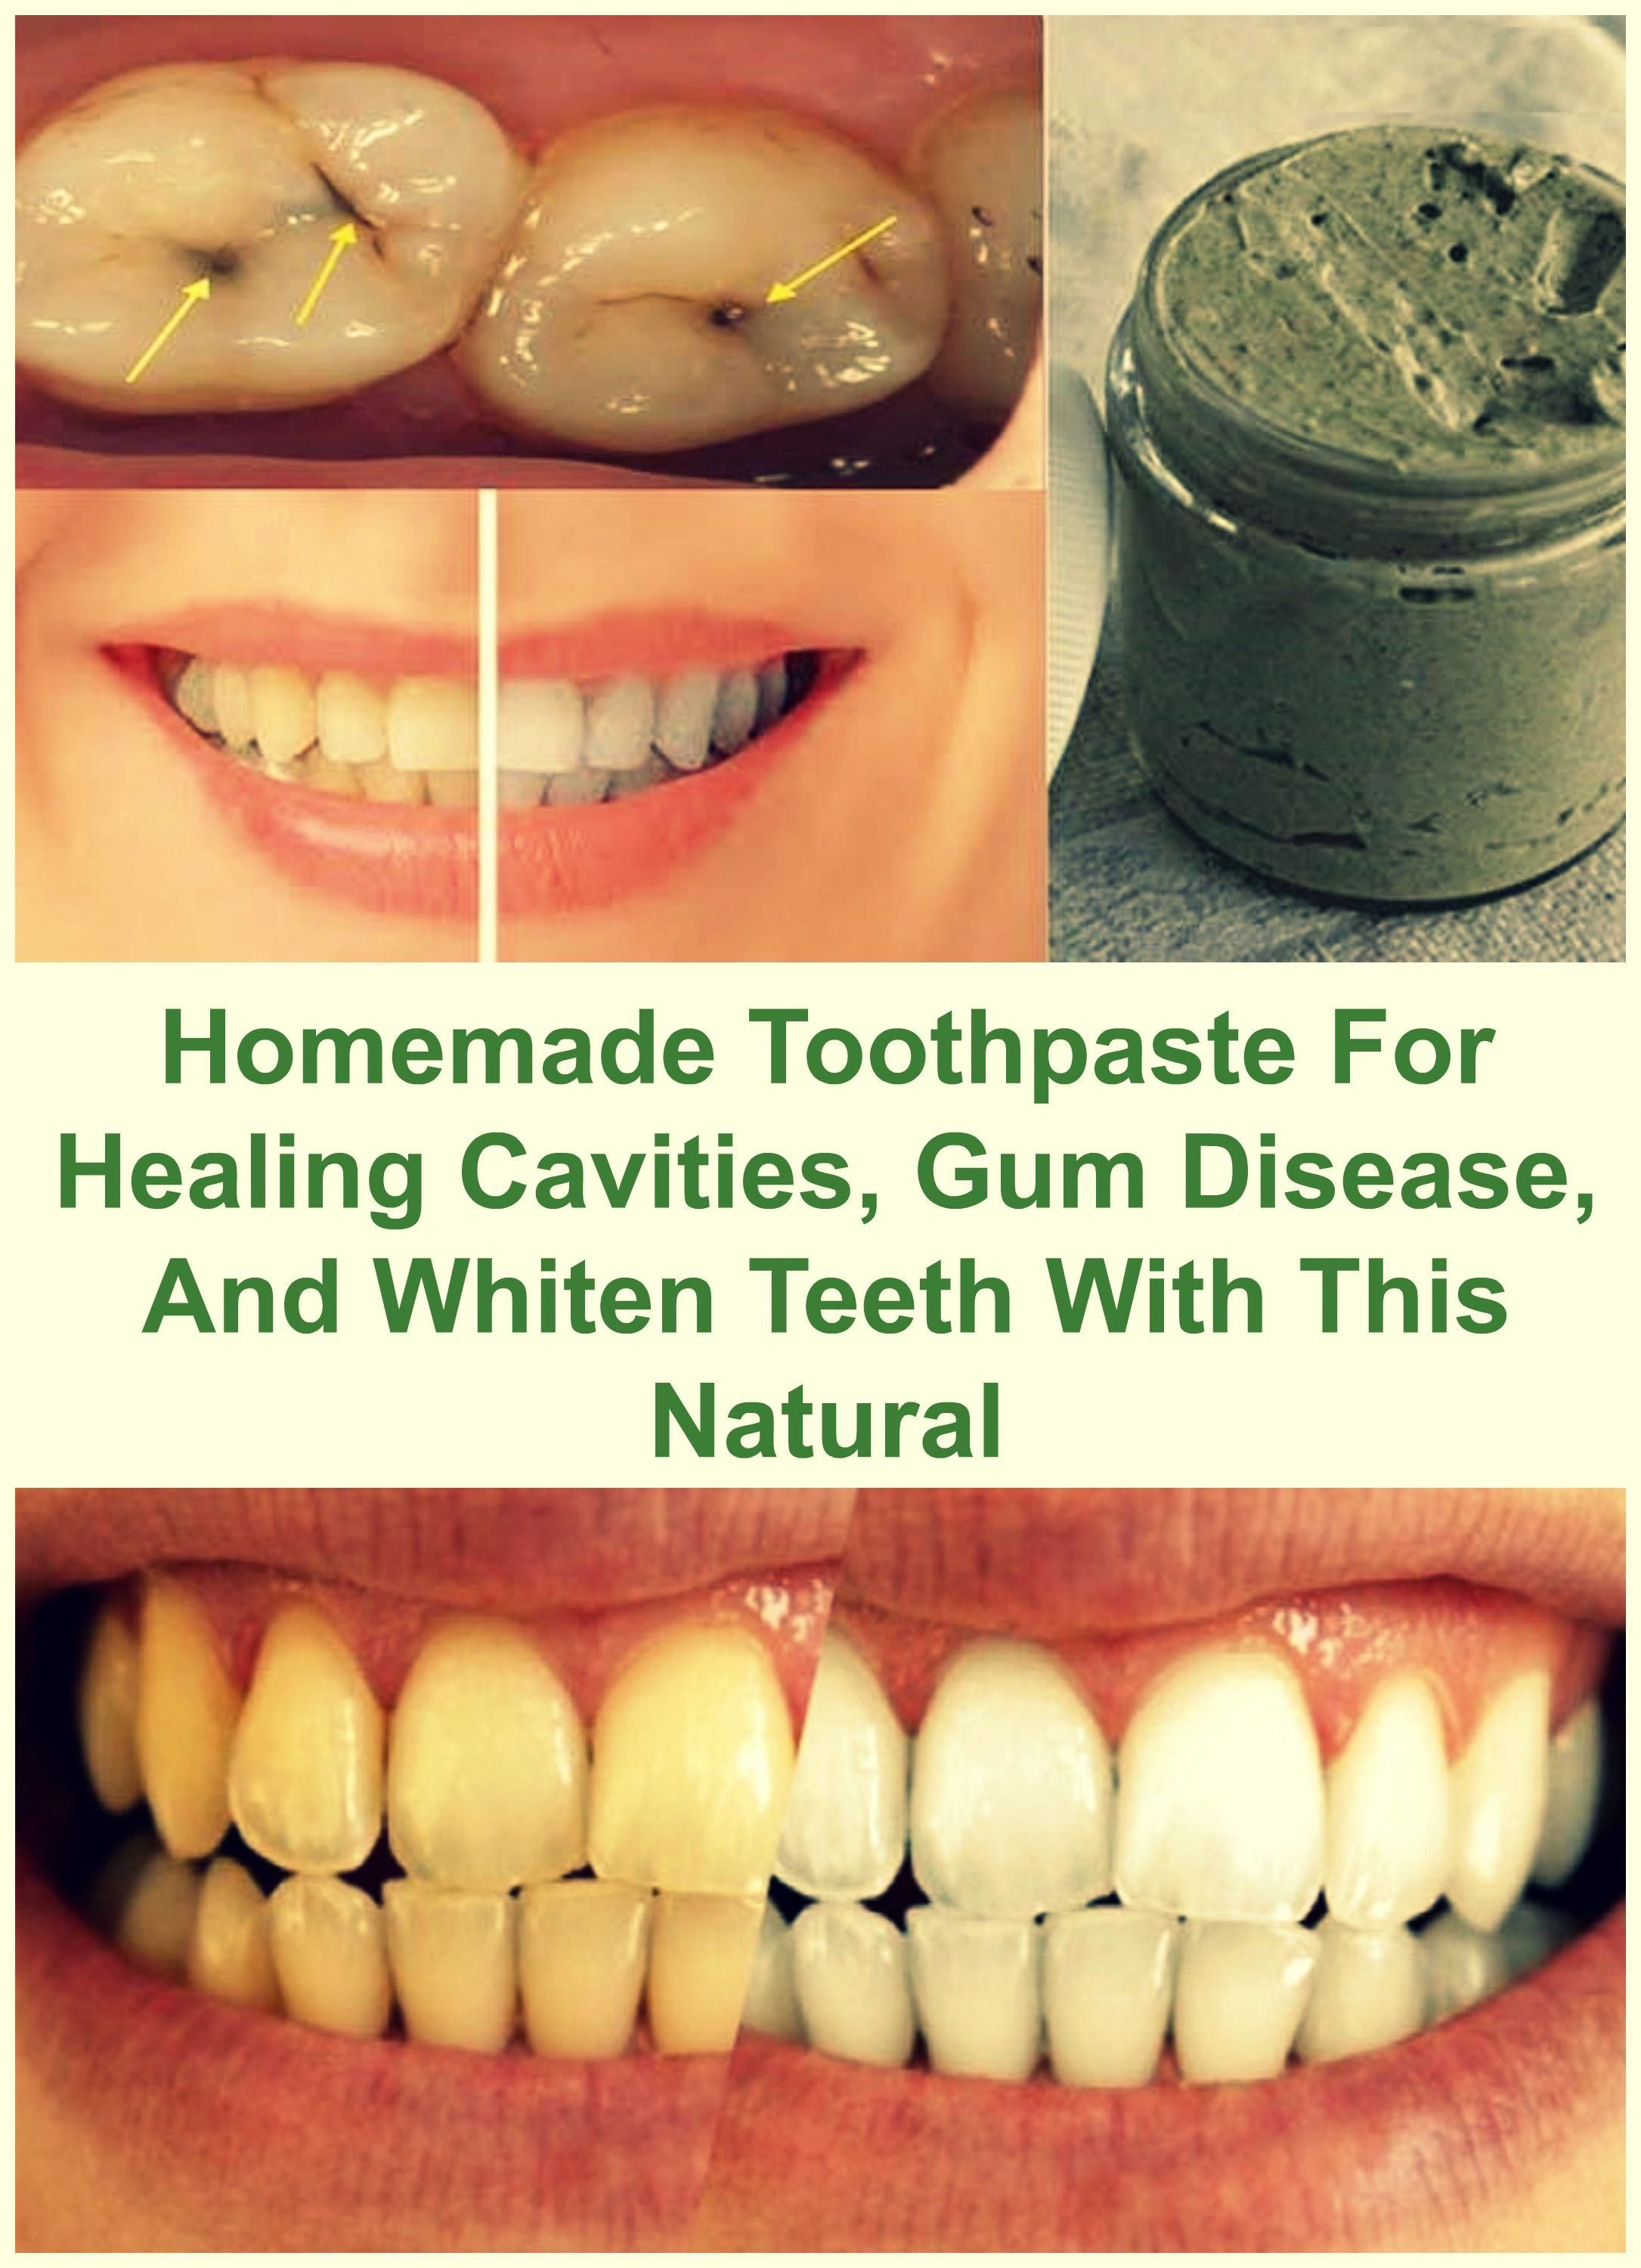 Heal Cavities Gum Disease And Whiten Teeth With This Natural